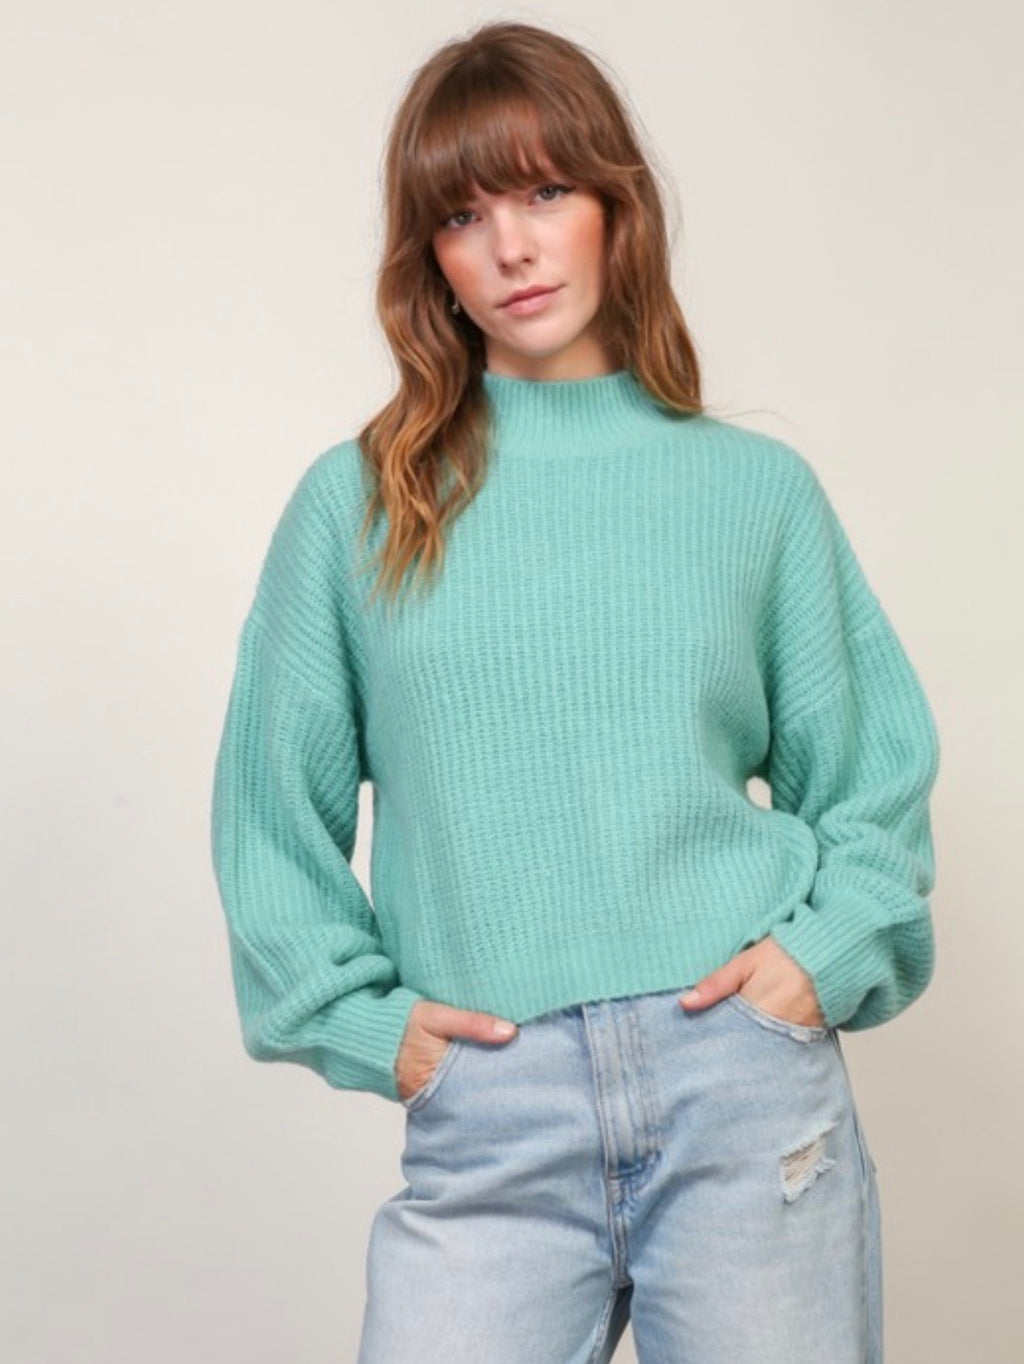 Jaded Mock Neck Sweater